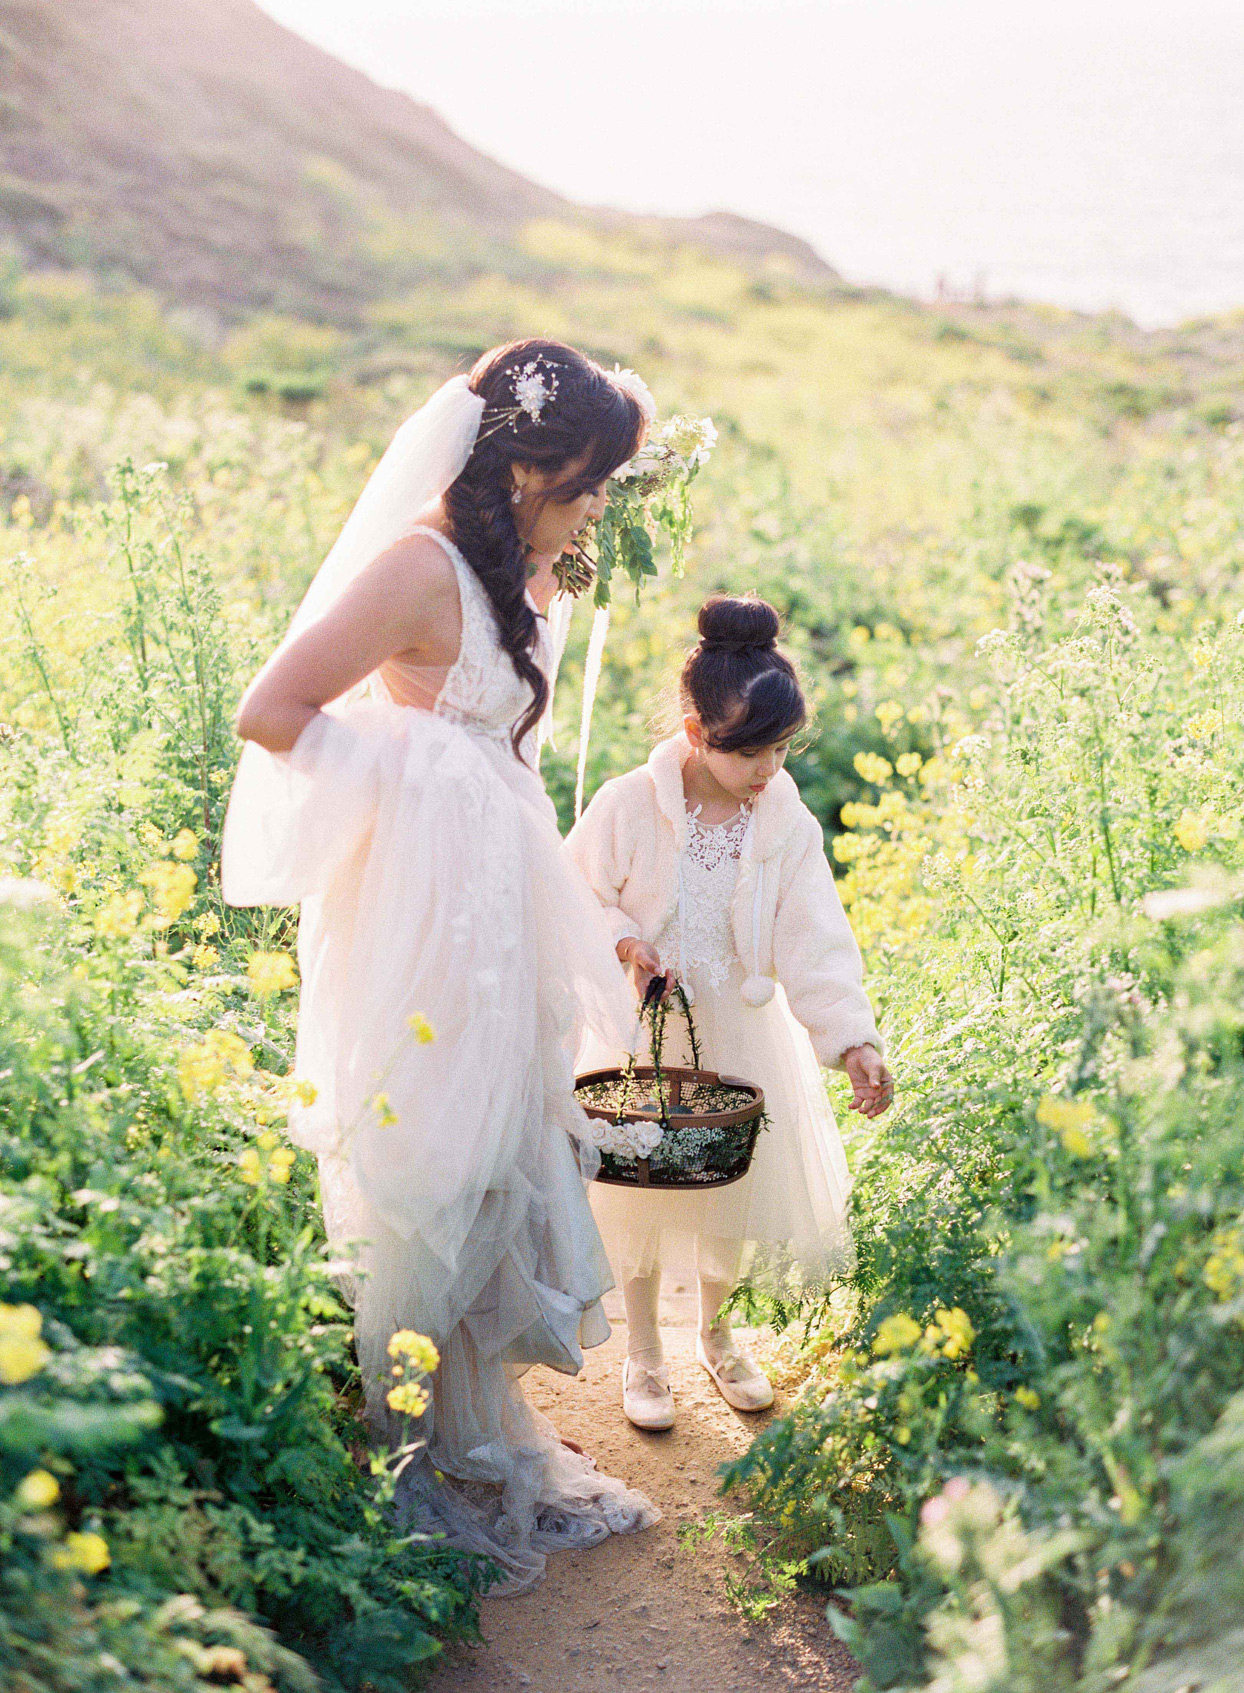 girl and bride pick flowers for wedding ceremony